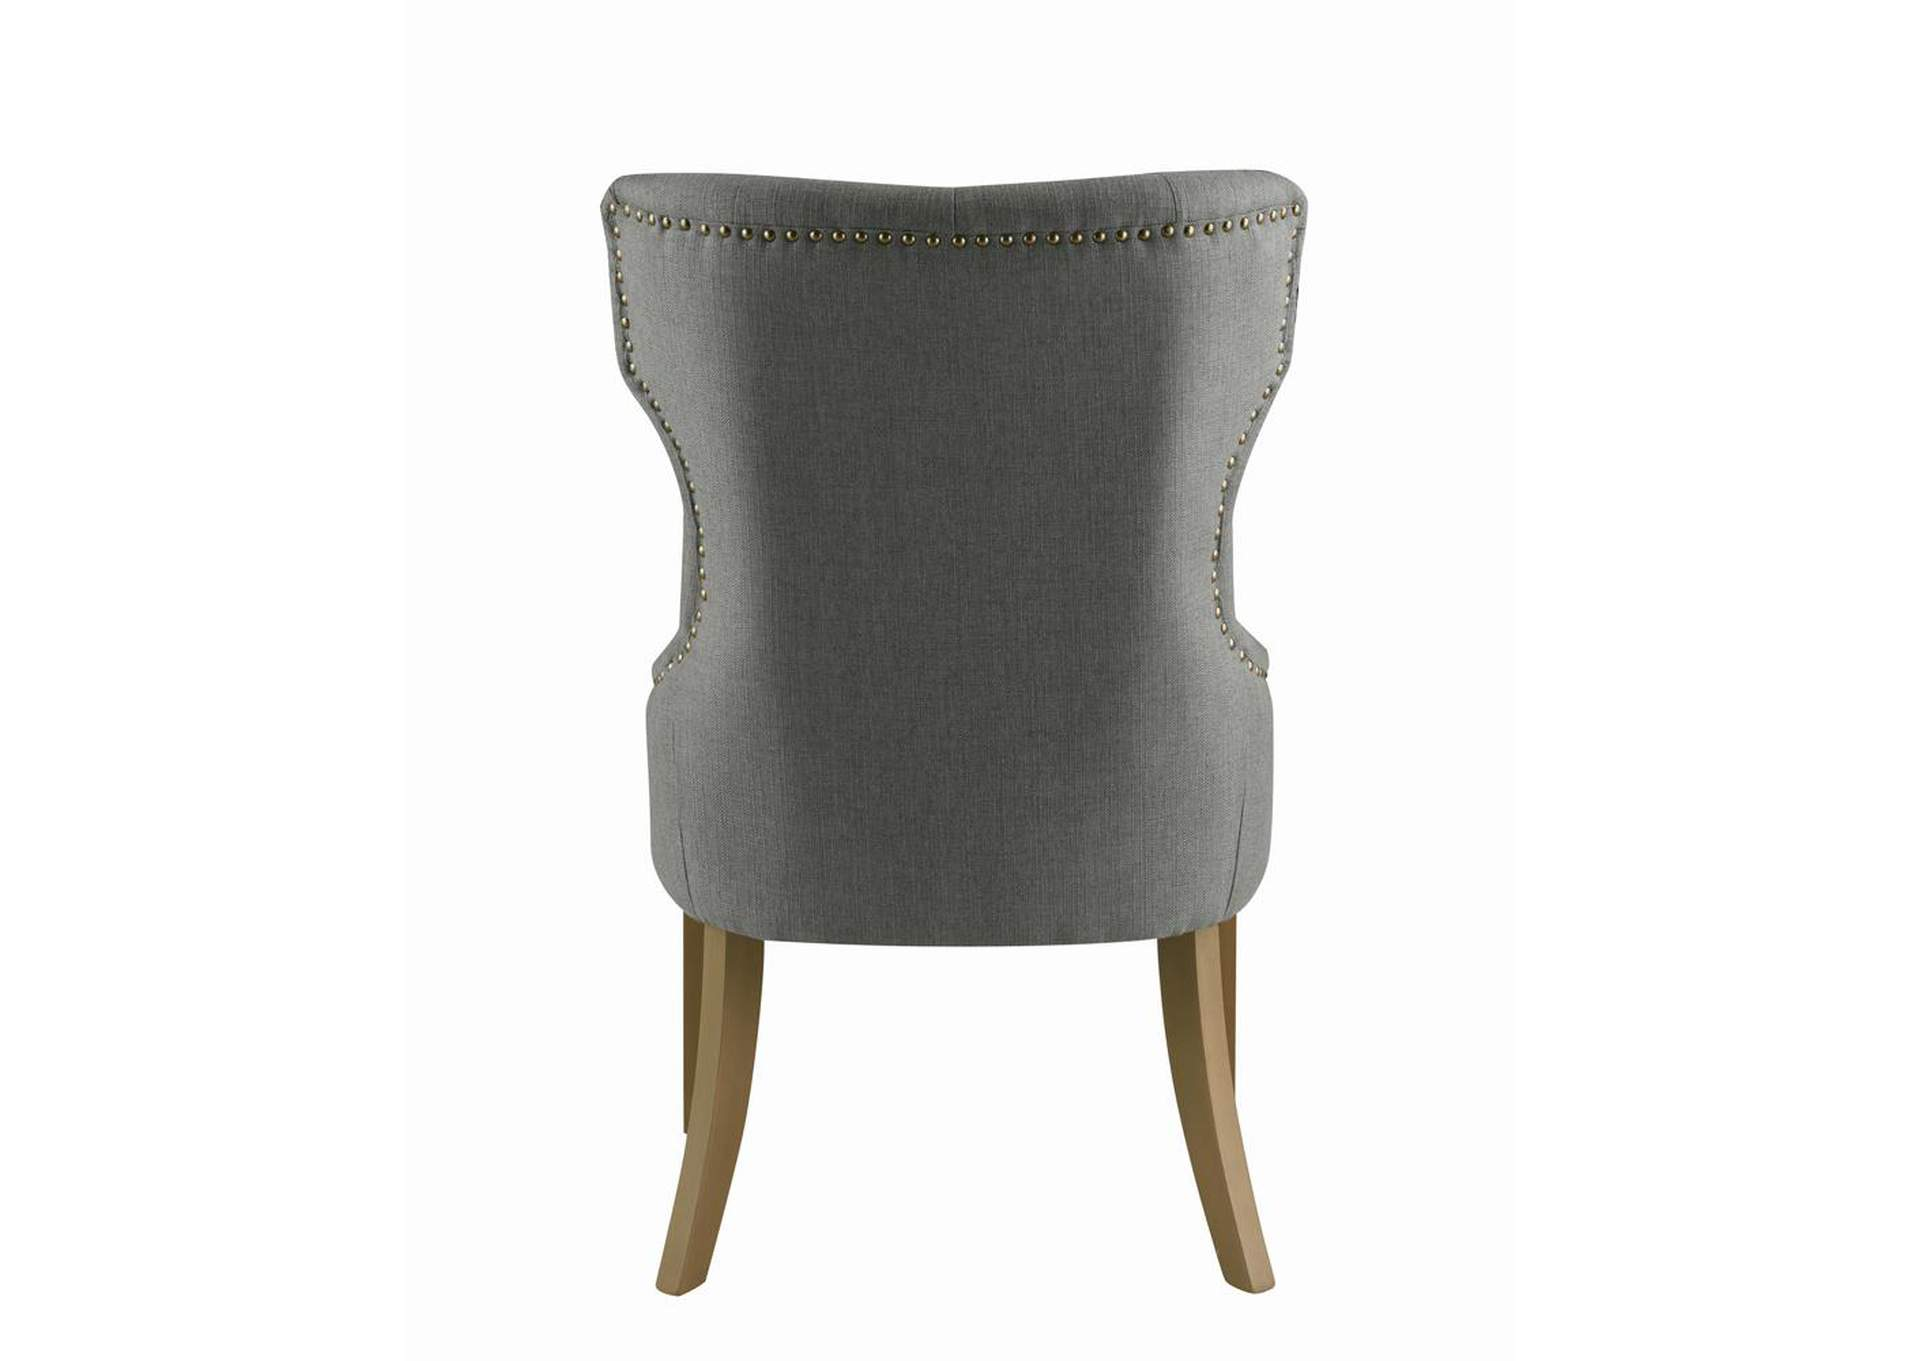 Florence Tufted Upholstered Dining Chair Grey,Coaster Furniture